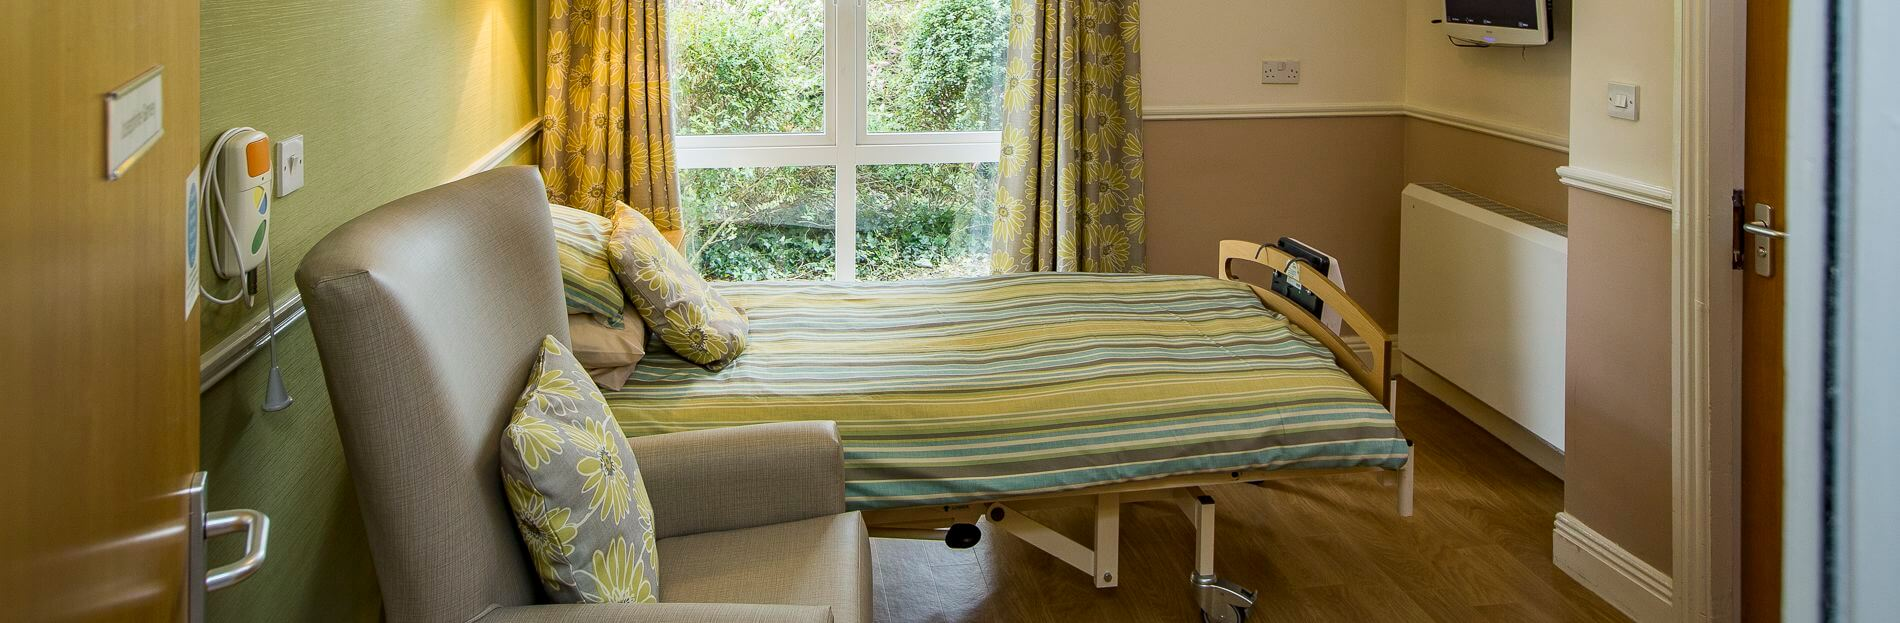 Residents bedroom at Trinity Care nursing home